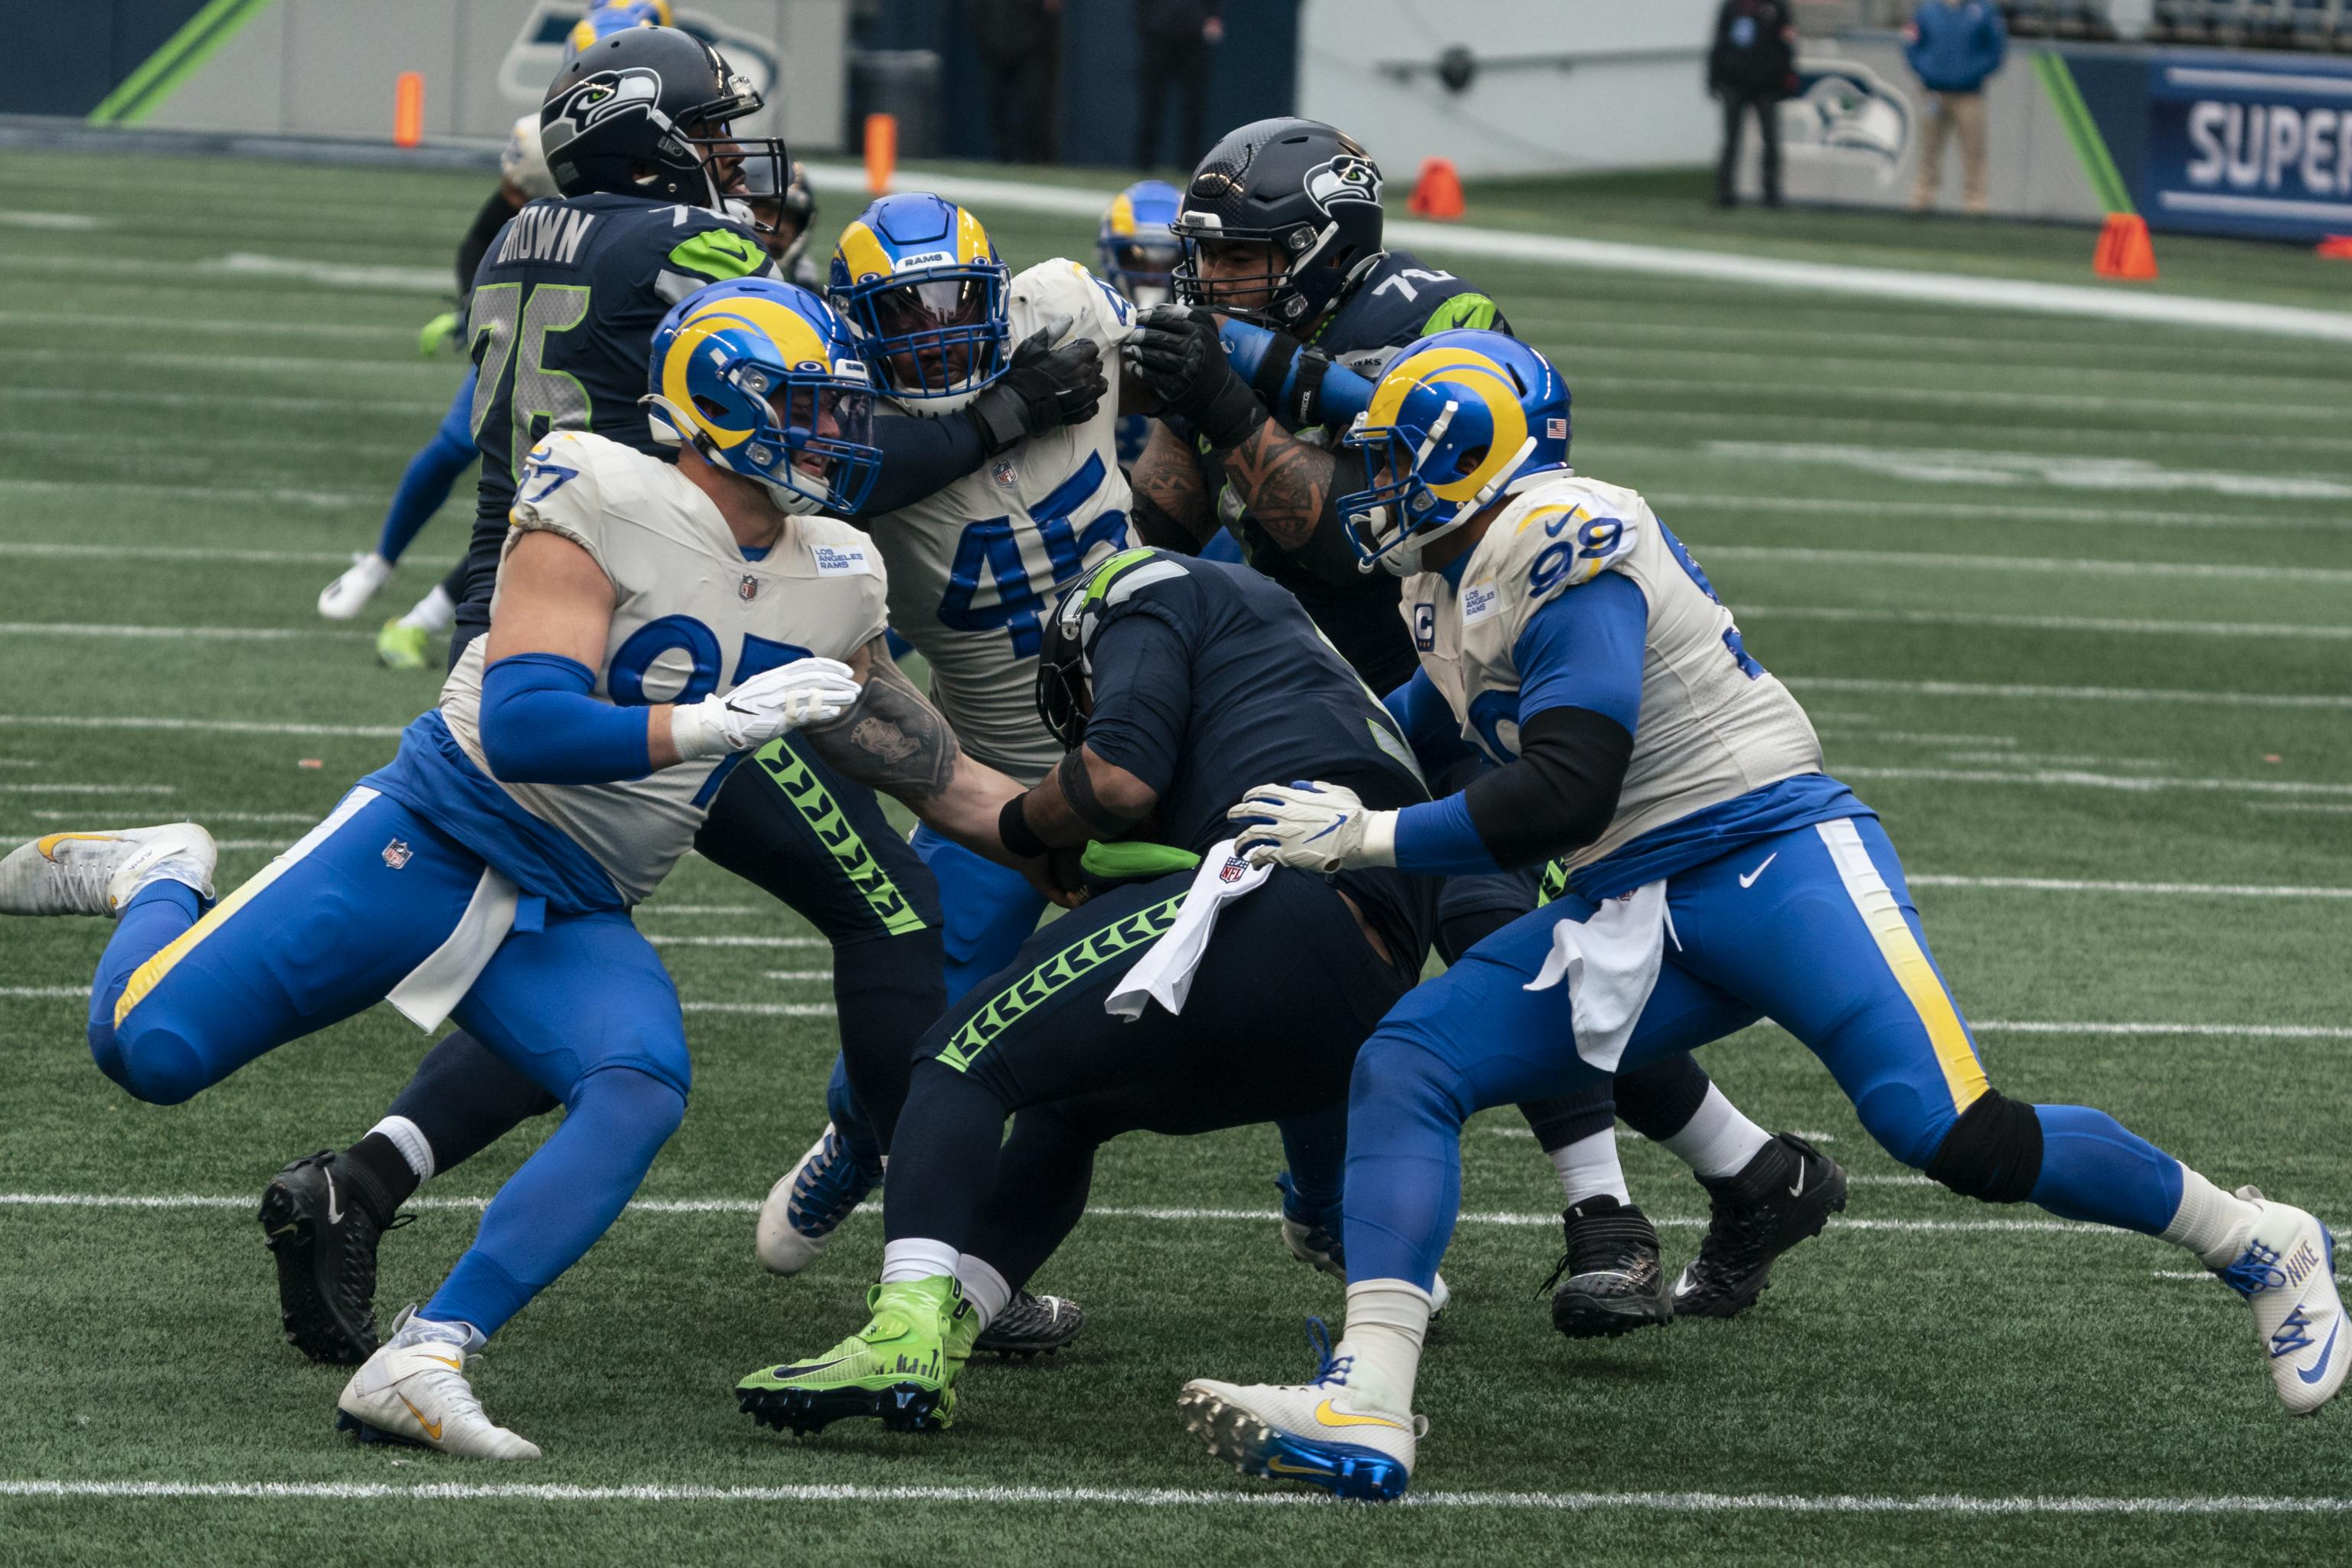 Seattle Seahawks Need To Listen To Russell Wilson Build Around Star Qb In 2021 Bleacher Report Latest News Videos And Highlights